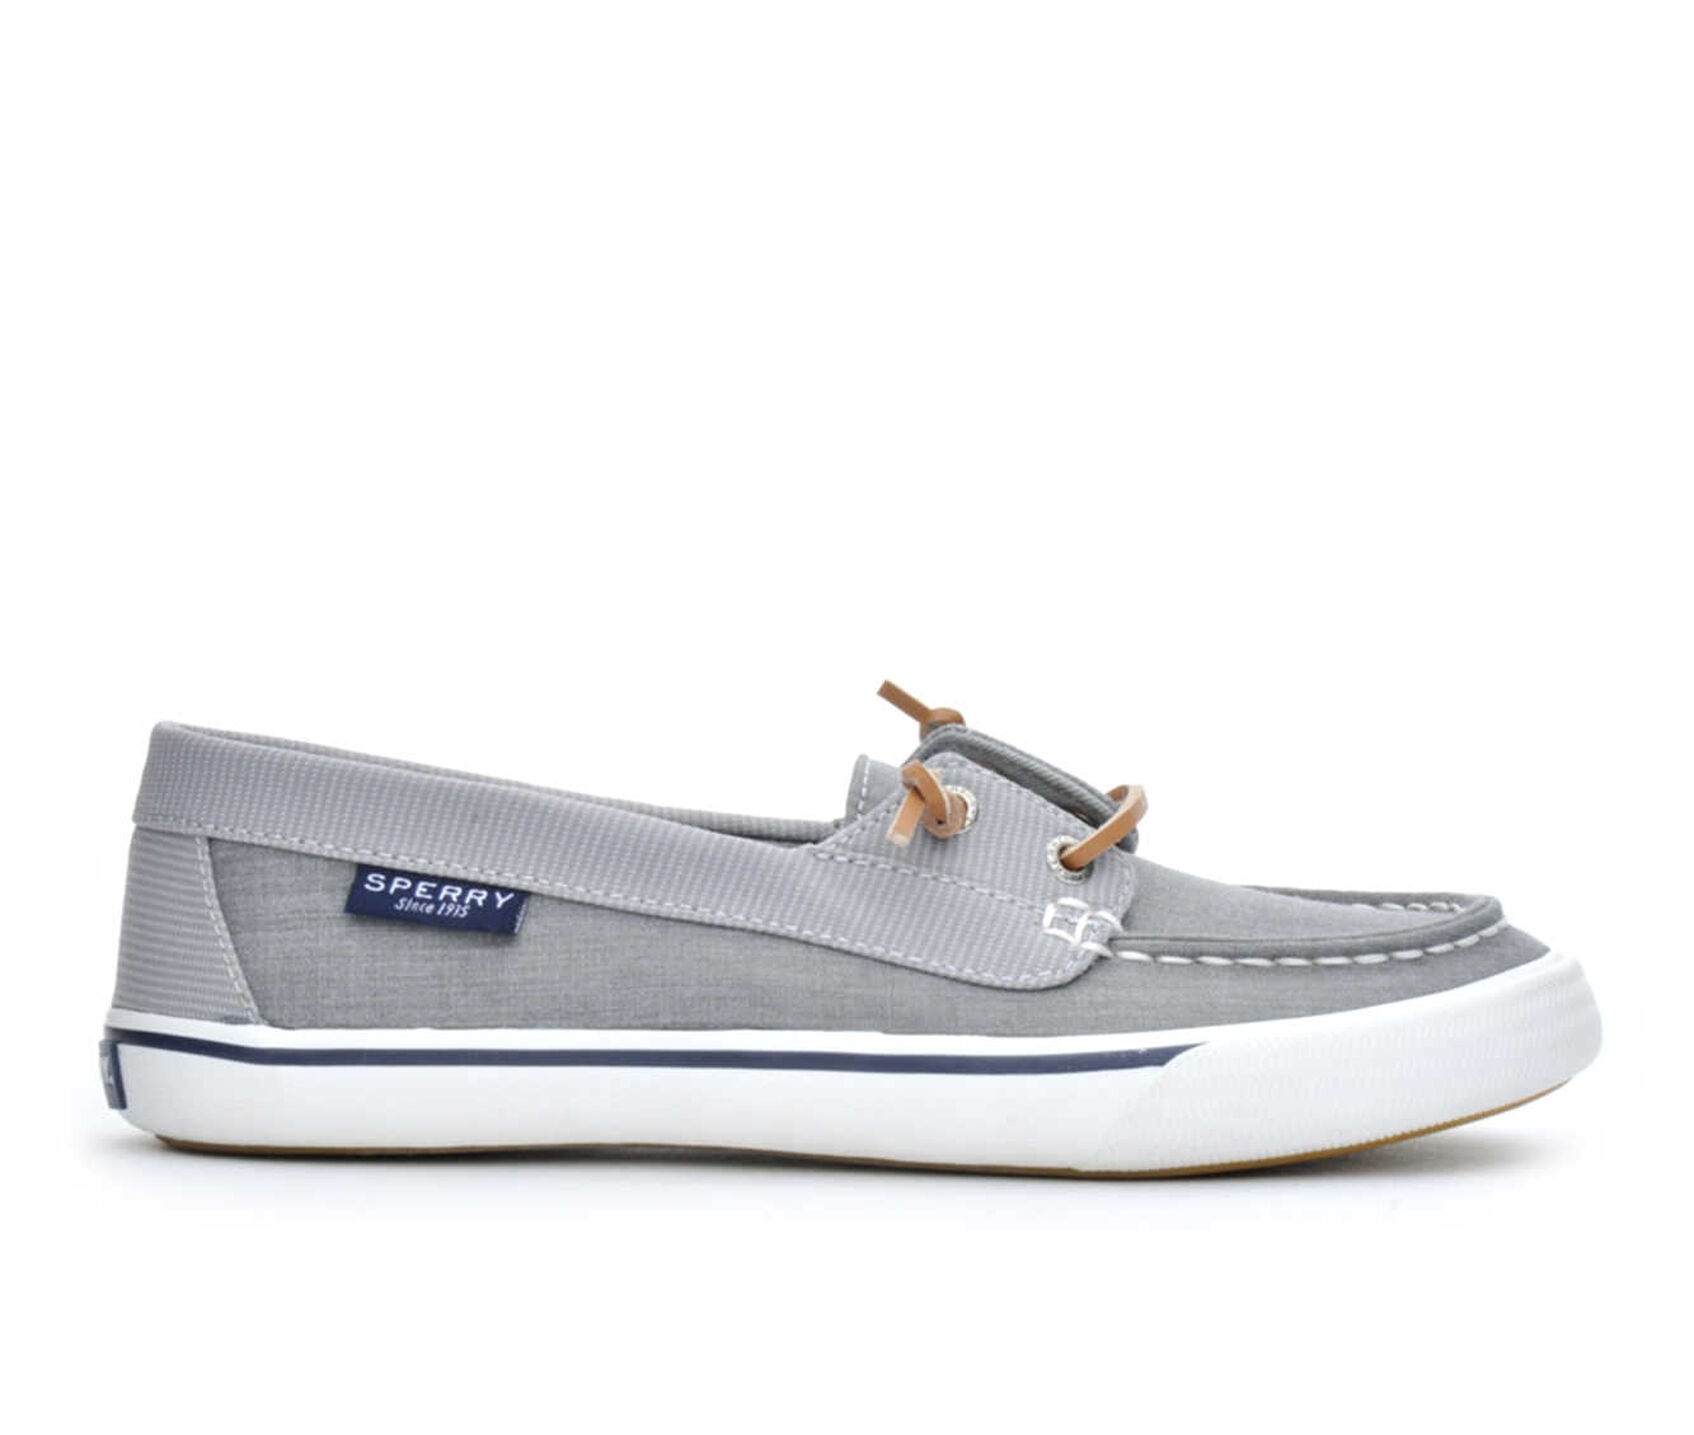 Sperry Top Sider Sailing Shoes